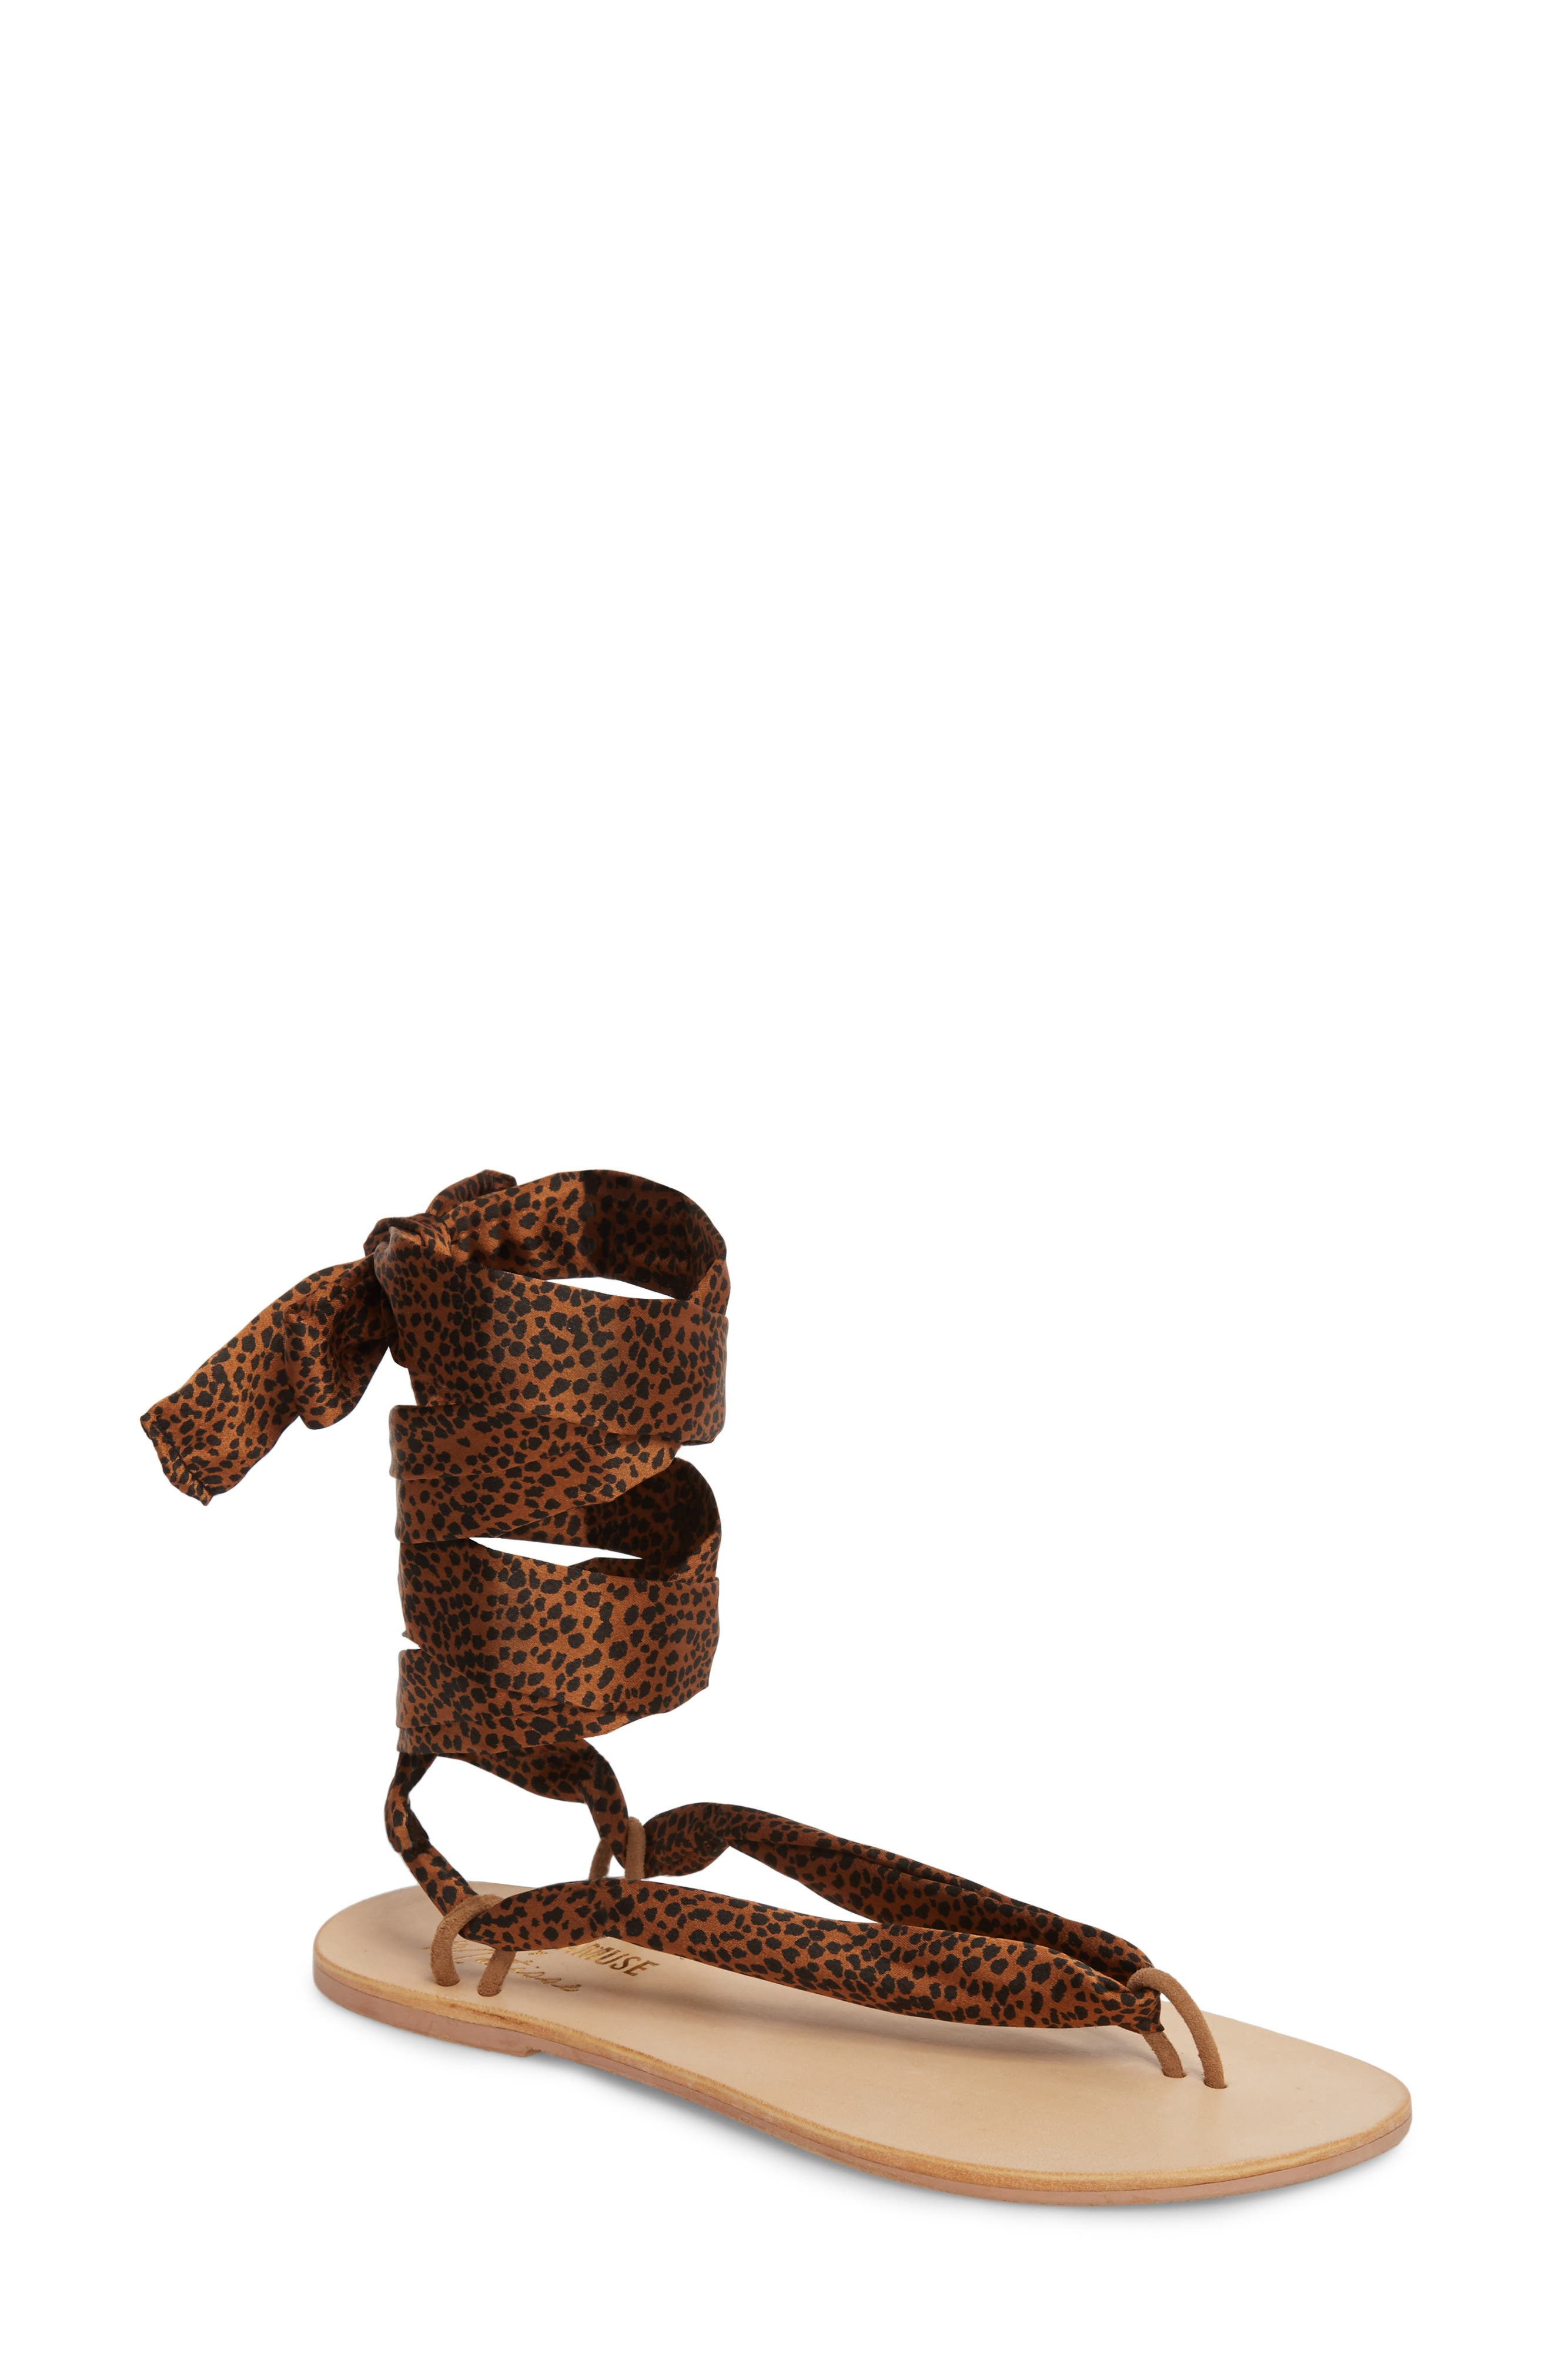 Amuse Society X Matisse Oceano Lace-Up Sandal, Brown